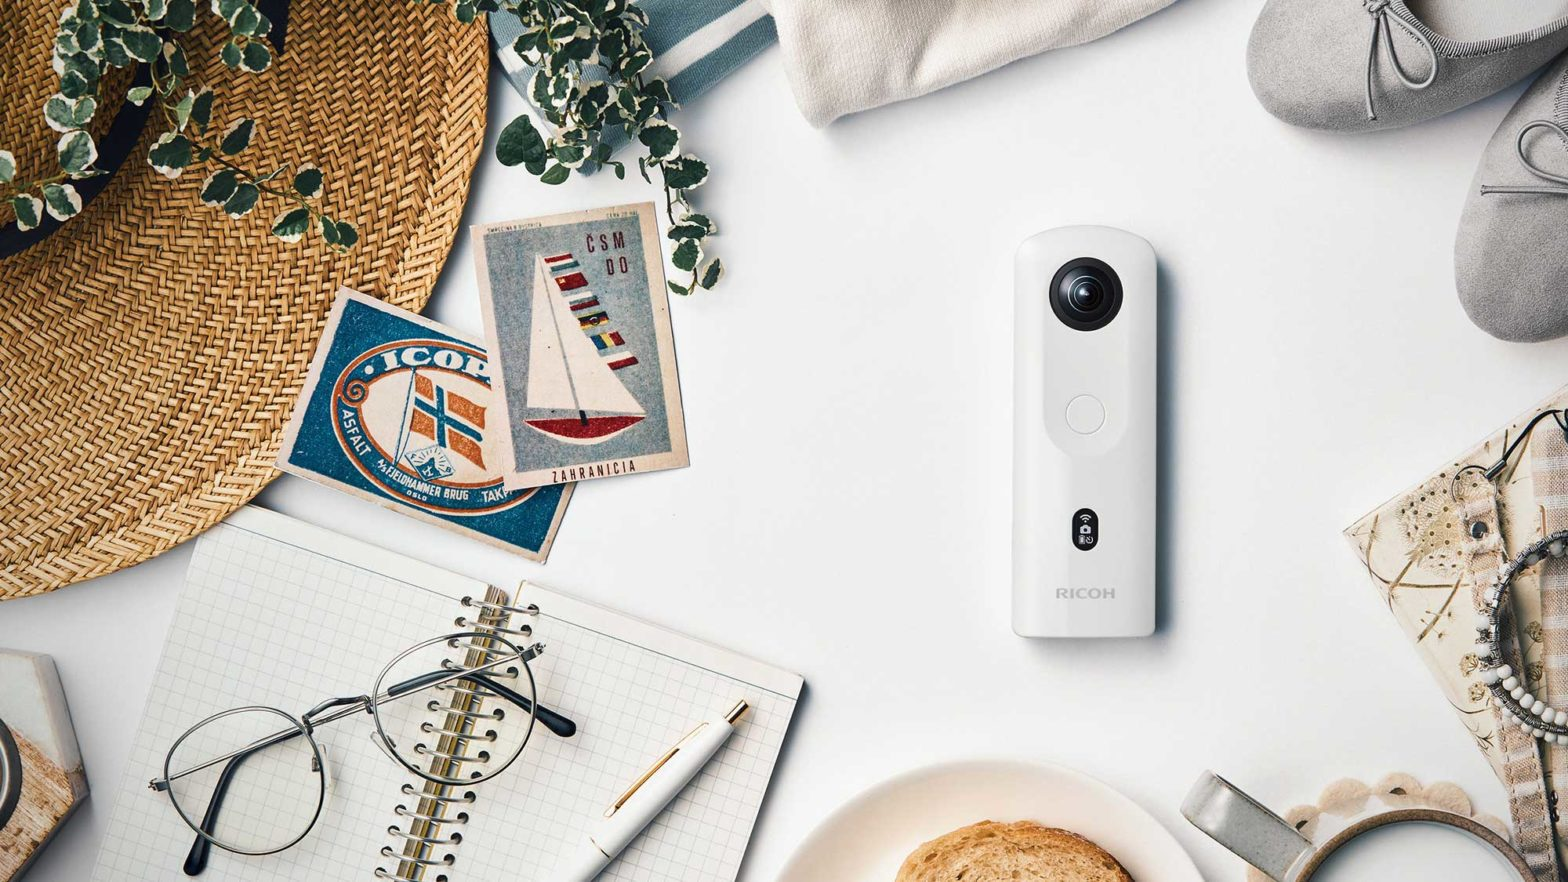 Ricoh Theta SC2 360-degree Camera